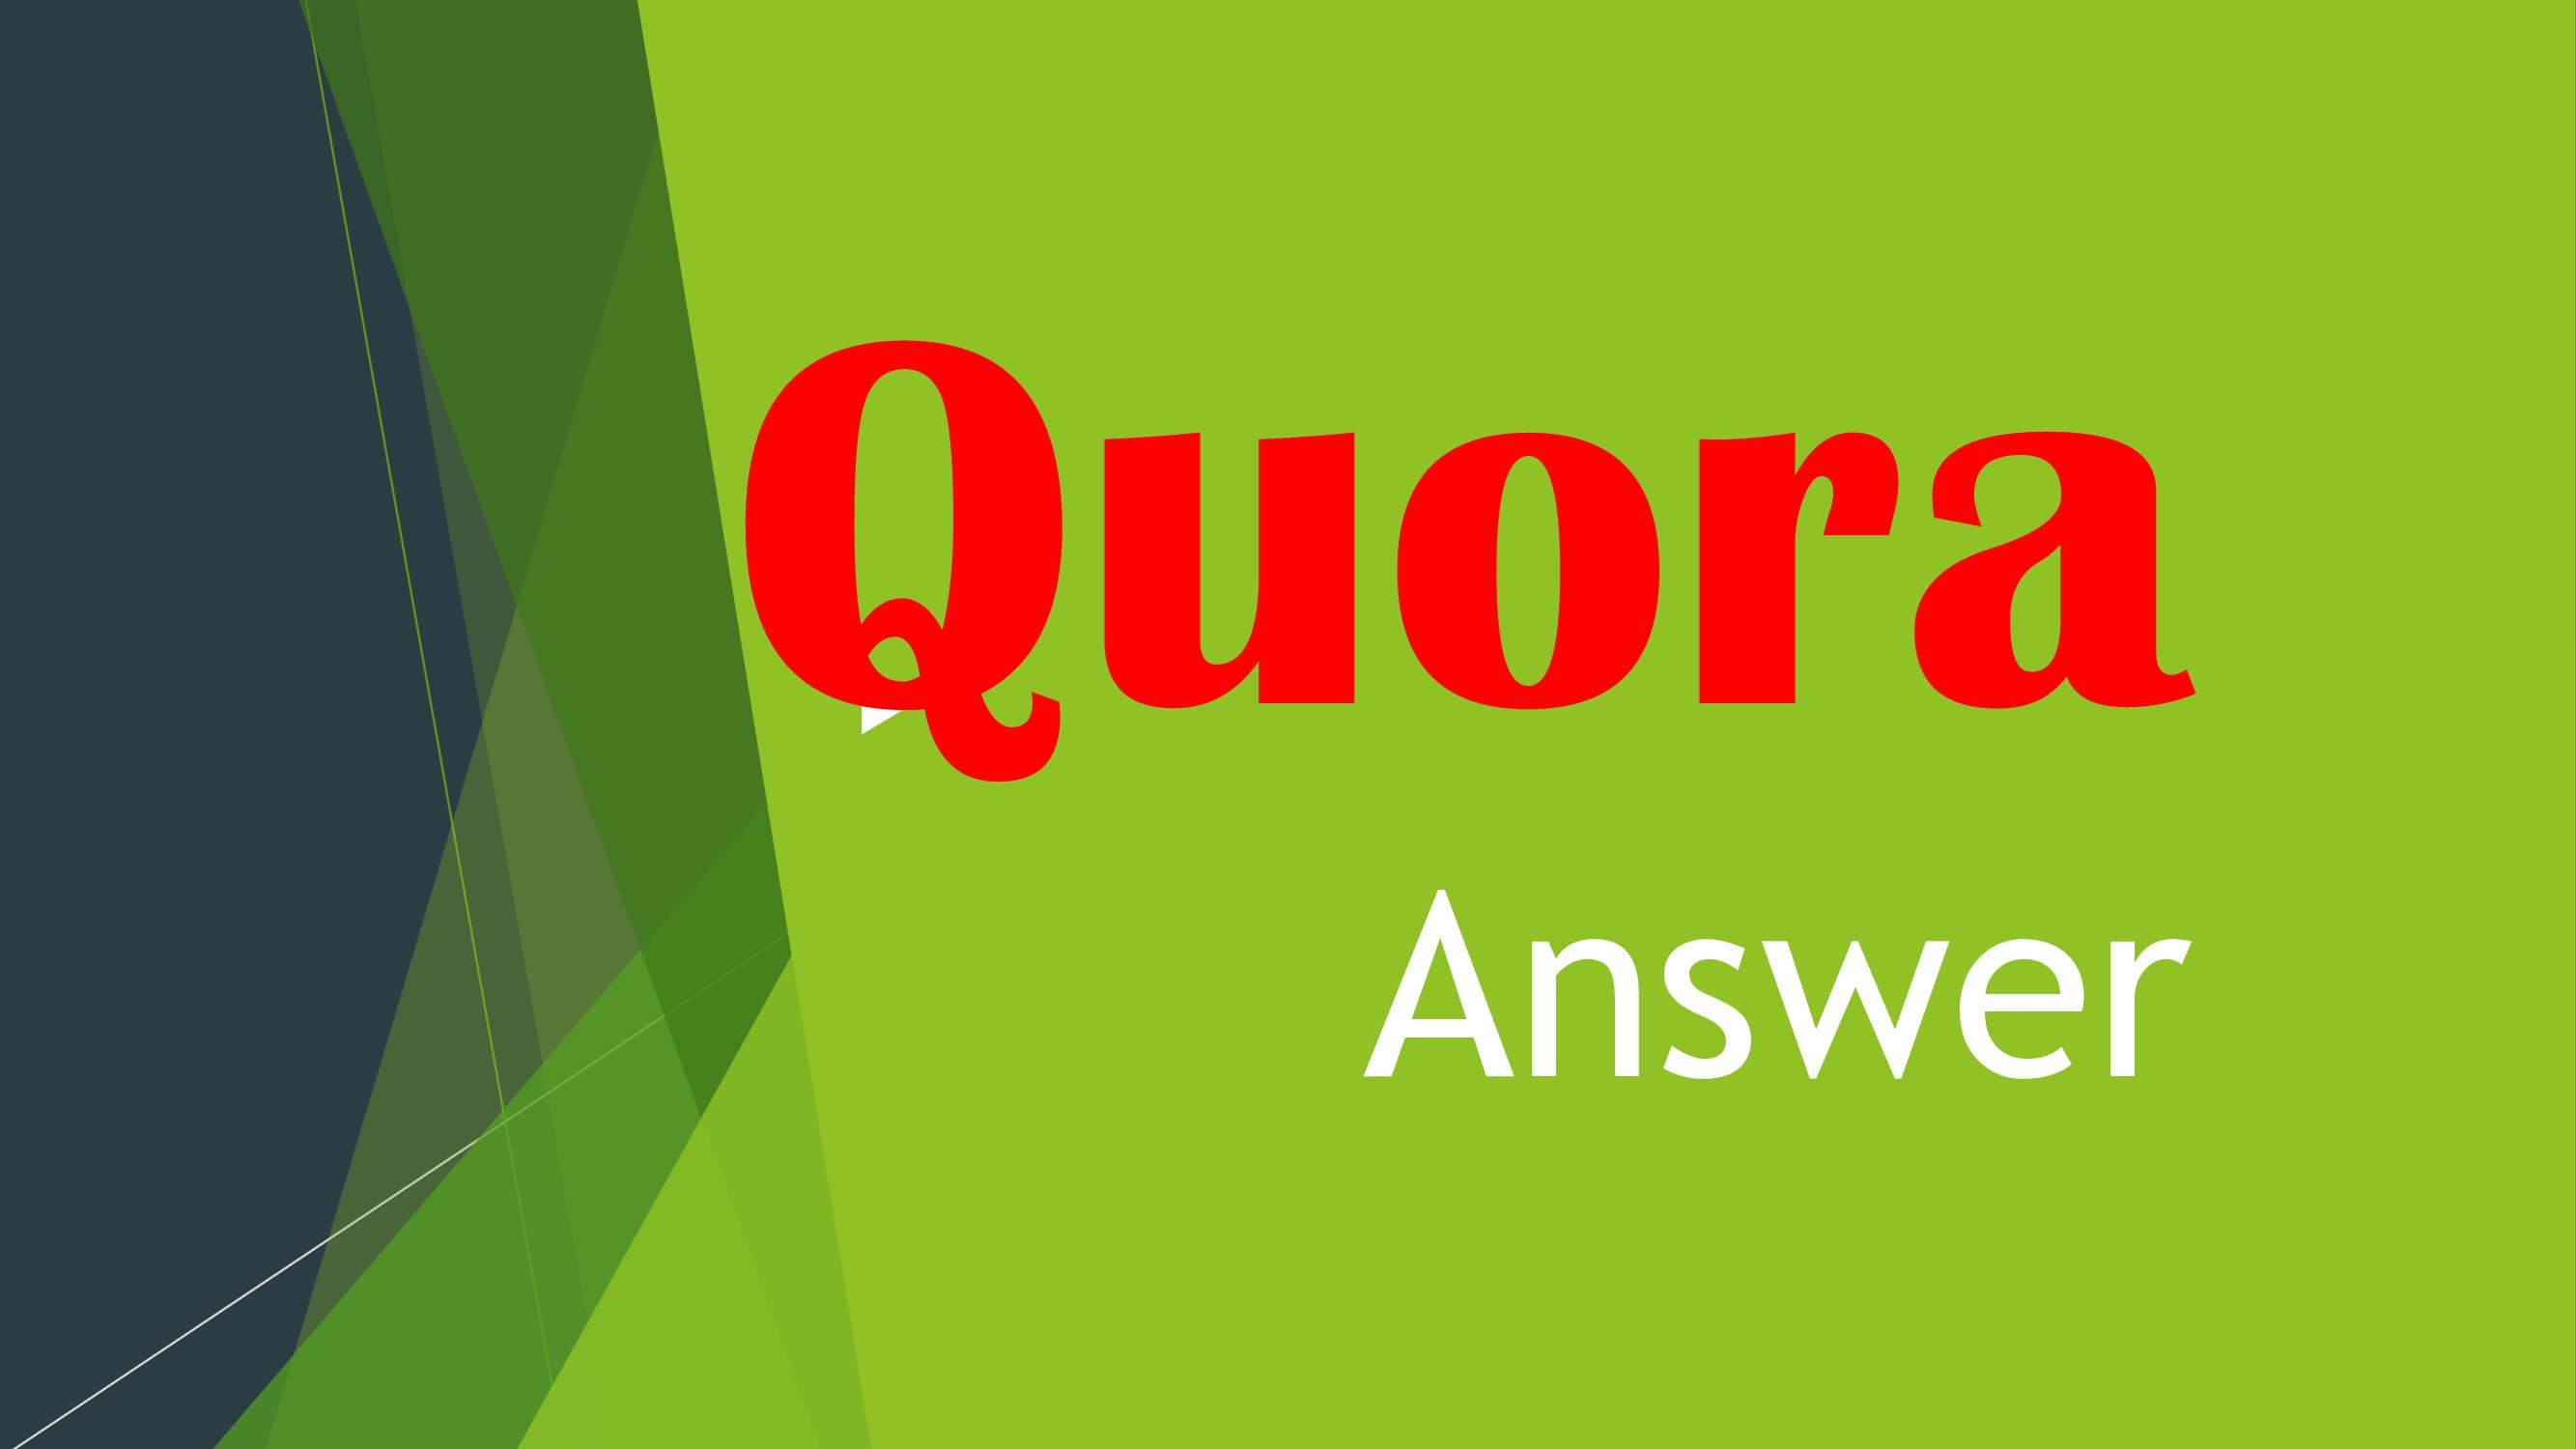 Promote Your Site with High Quality 3 Quora Answer posting